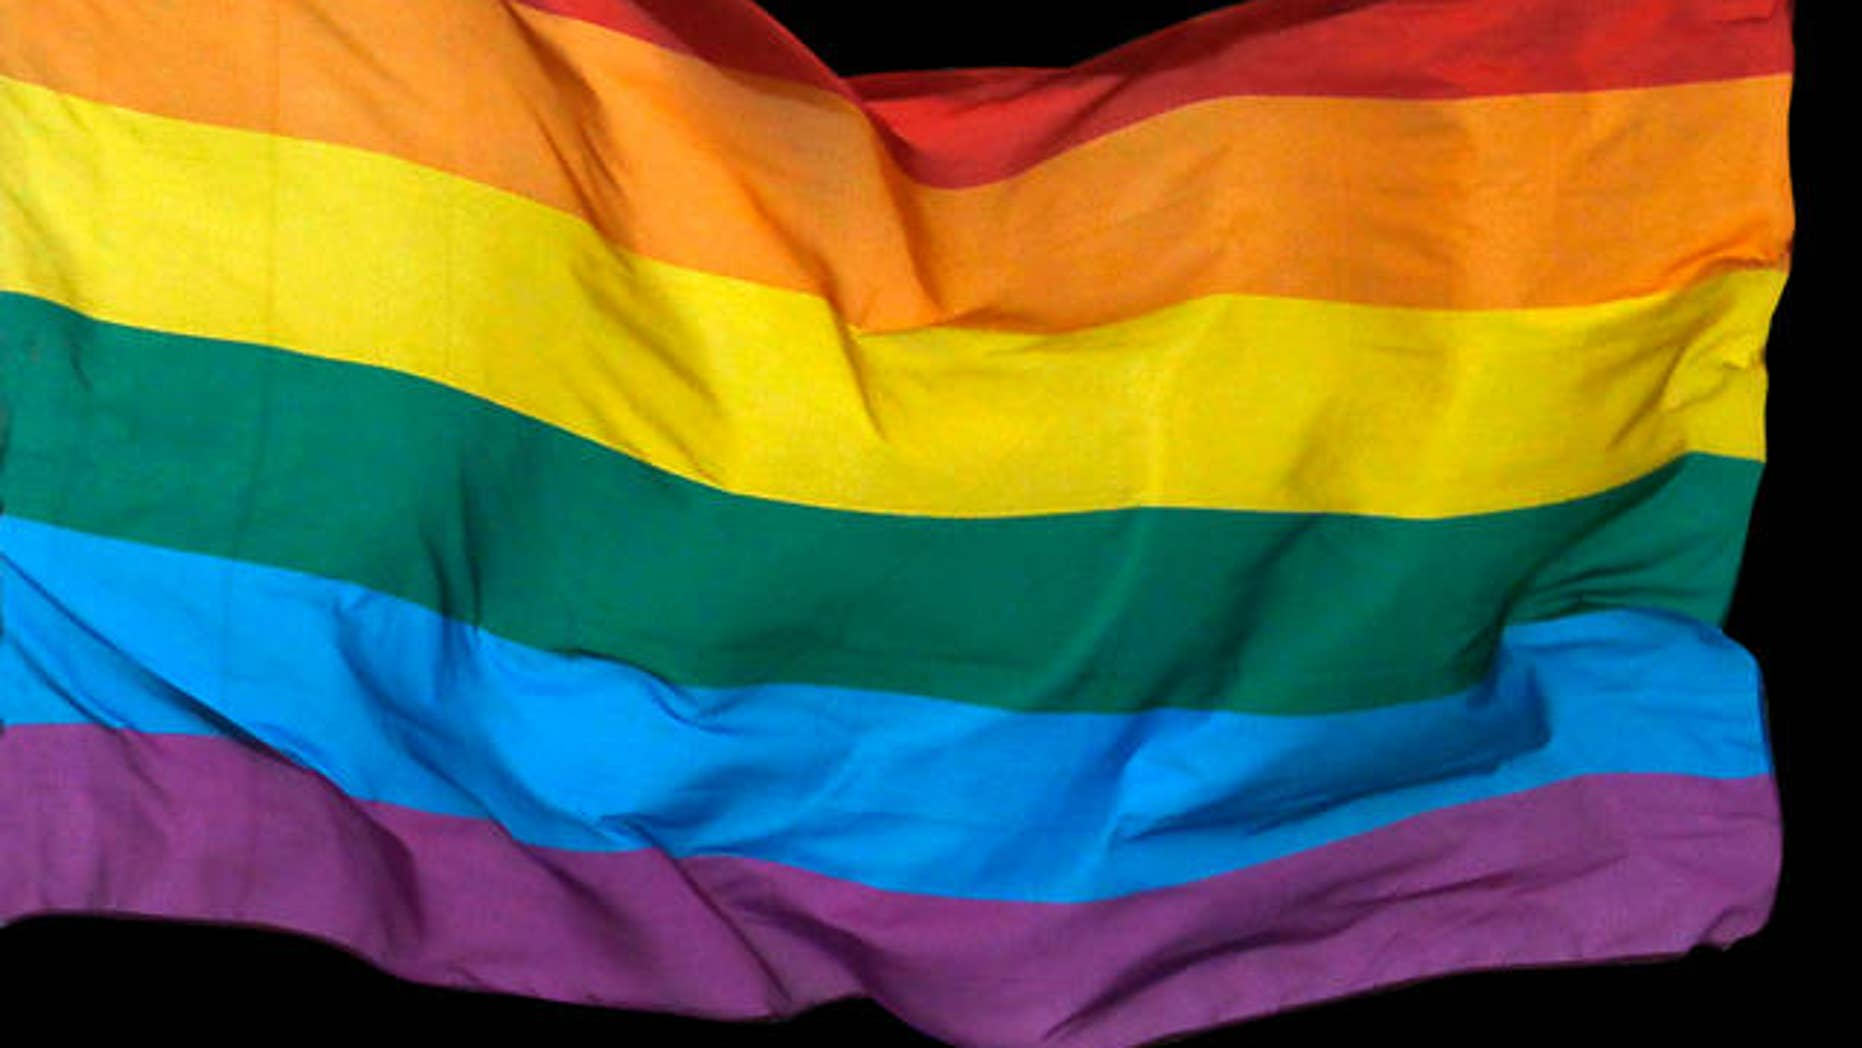 The Richmond Federal Reserve Bank's decision to fly the gay pride flag outside of its building below the American flag has stirred outrage among at least one Virginia lawmaker who wants it removed. (AP)